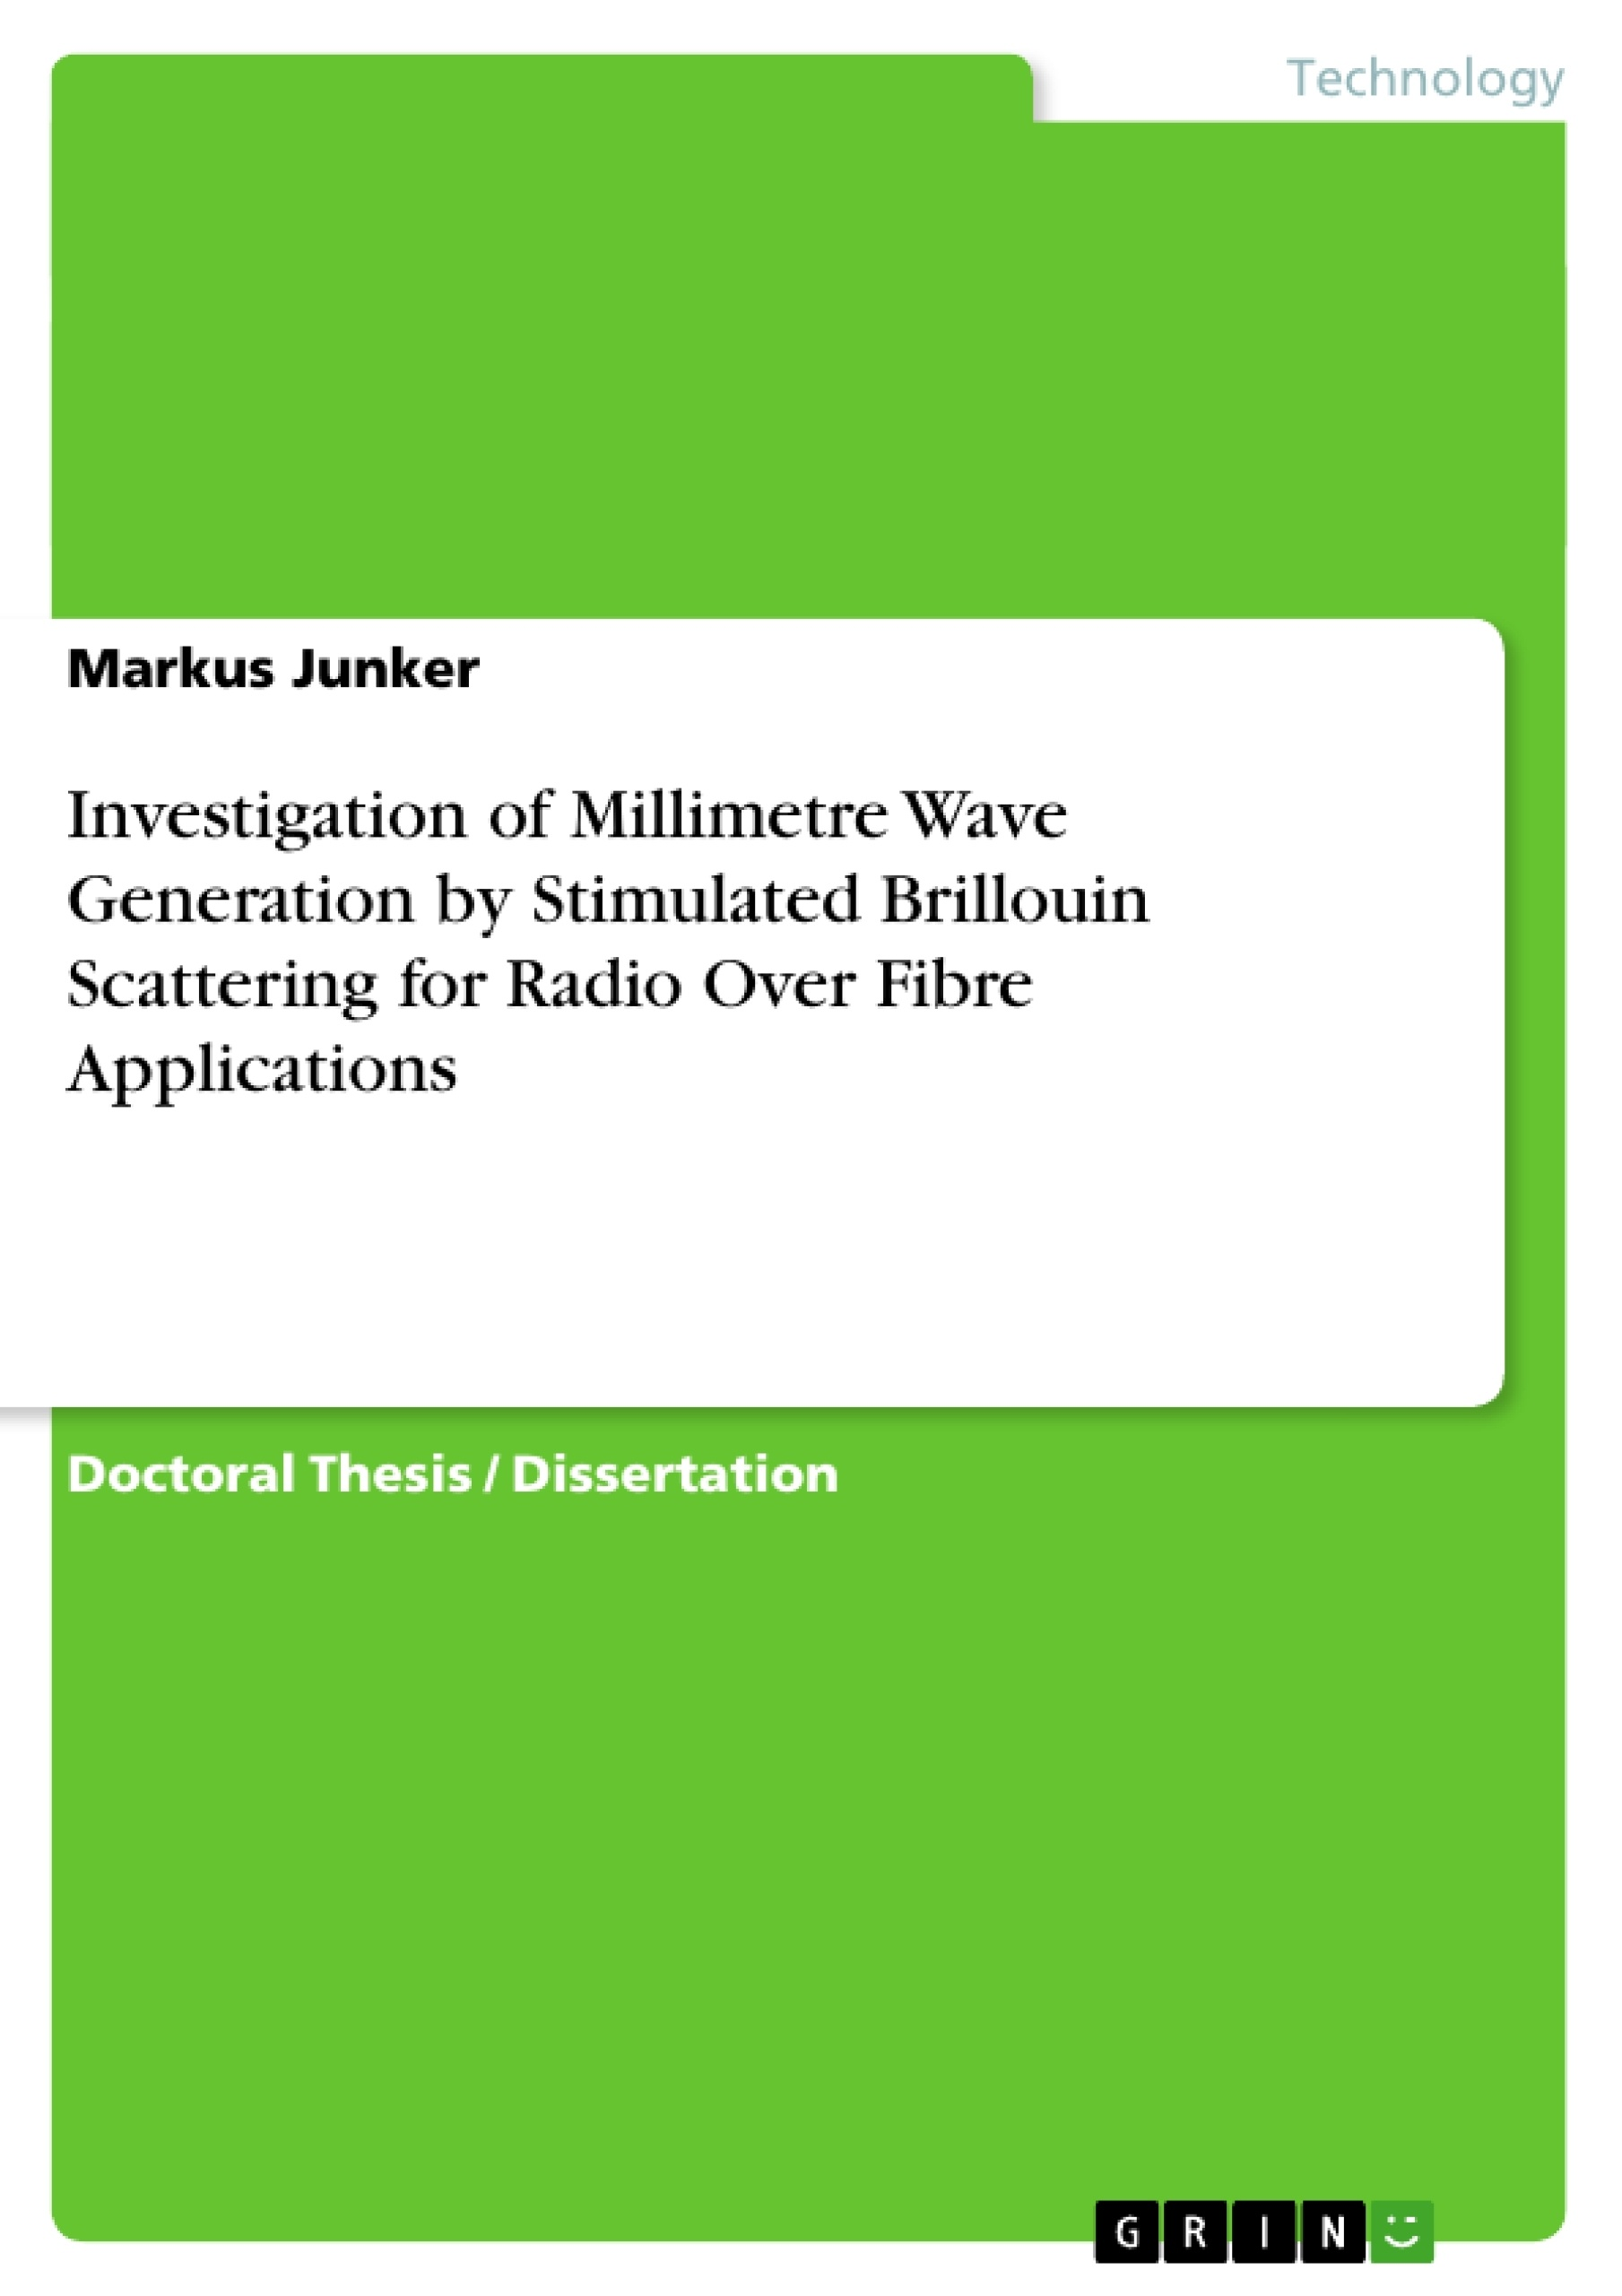 Title: Investigation of Millimetre Wave Generation by Stimulated Brillouin Scattering for Radio Over Fibre Applications